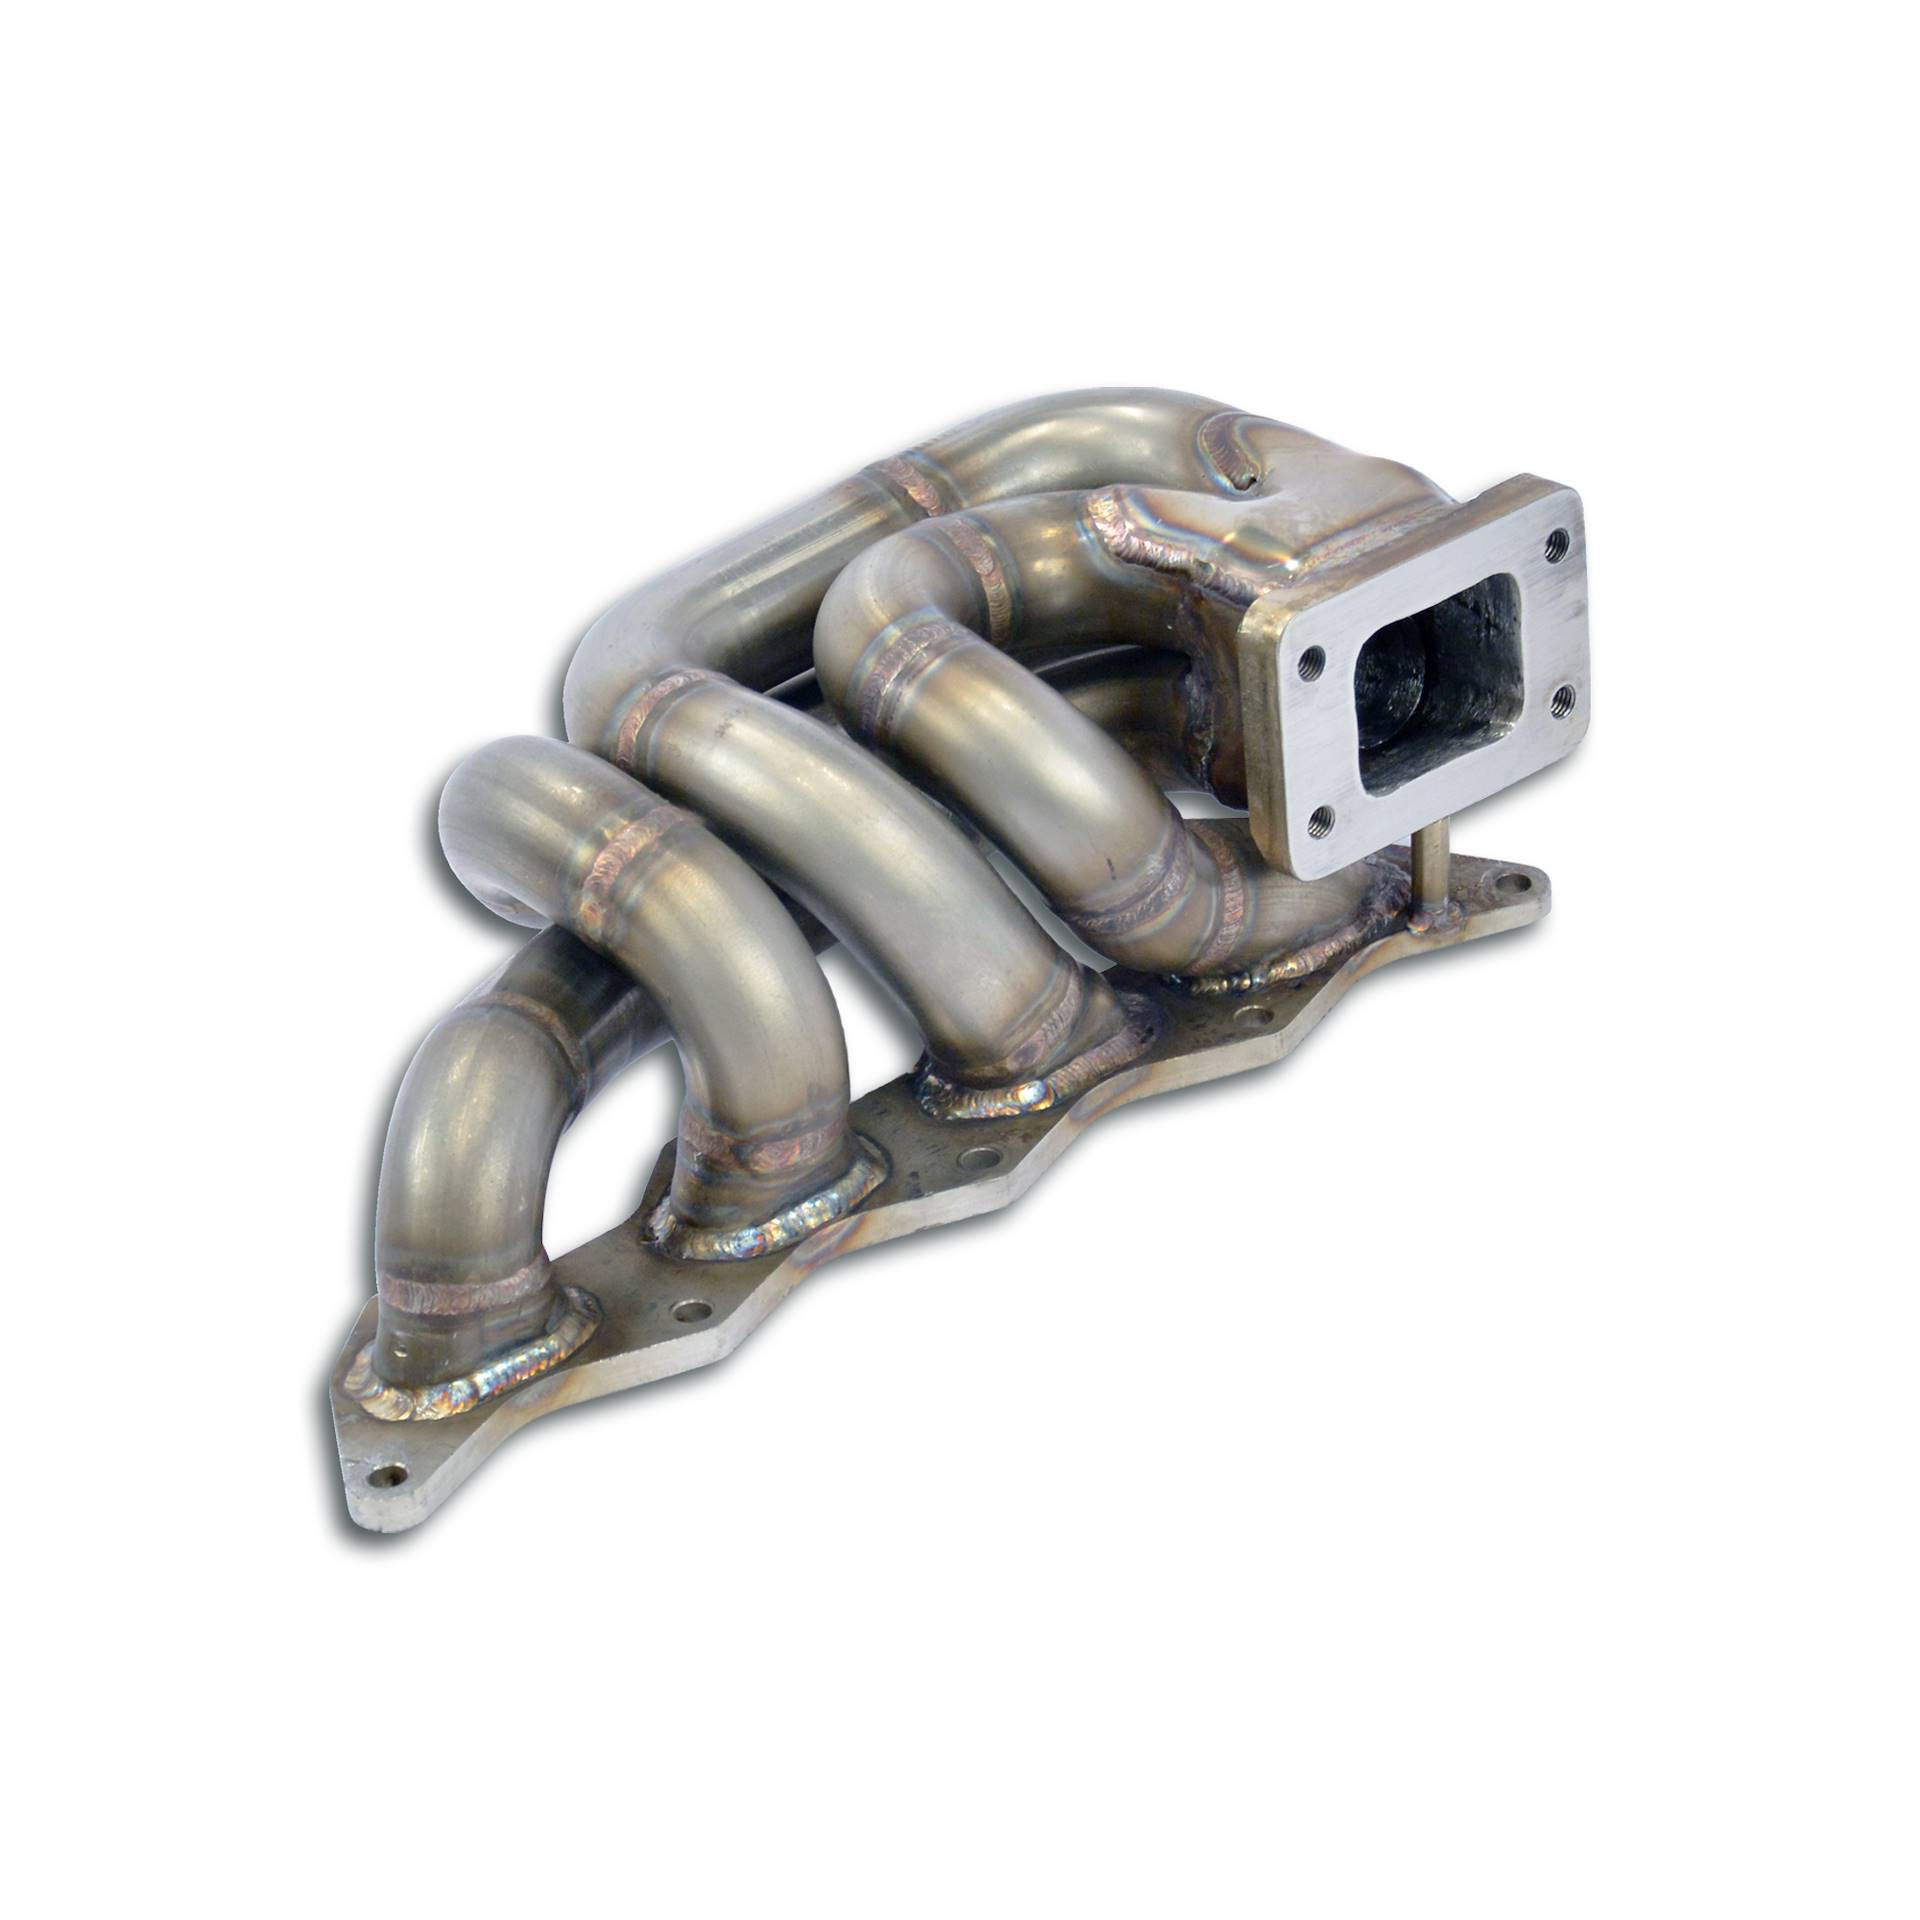 Alfa Romeo - ALFA ROMEO 155 2.0 Q4 Integrale Manifold Stainless steel 310S, performance exhaust systems